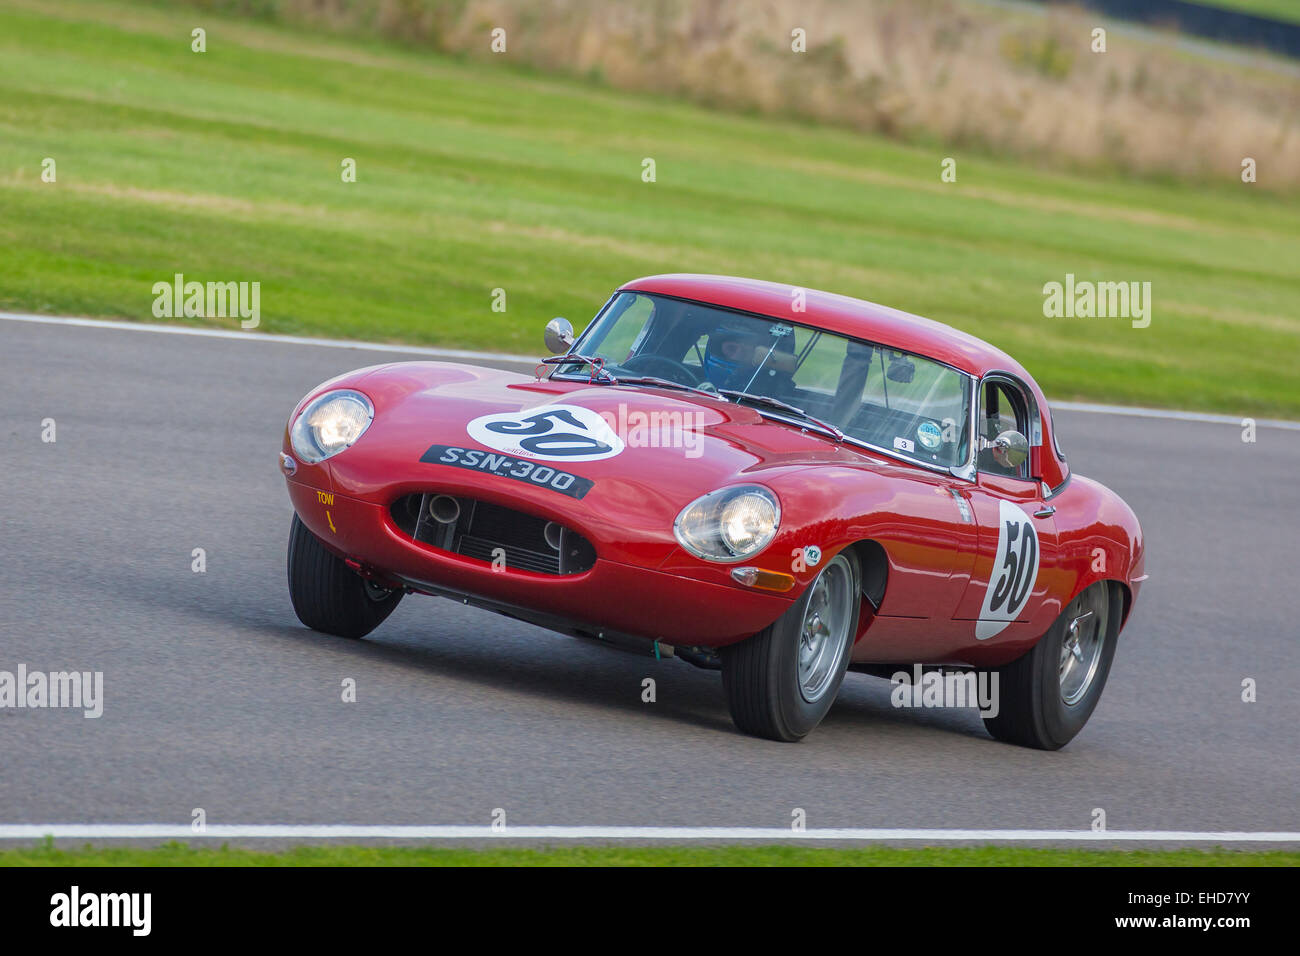 1961 Jaguar E-Type 'semi-lightweight' during the RAC TT Celebration race at the 2014 Goodwood Revival, Sussex, - Stock Image